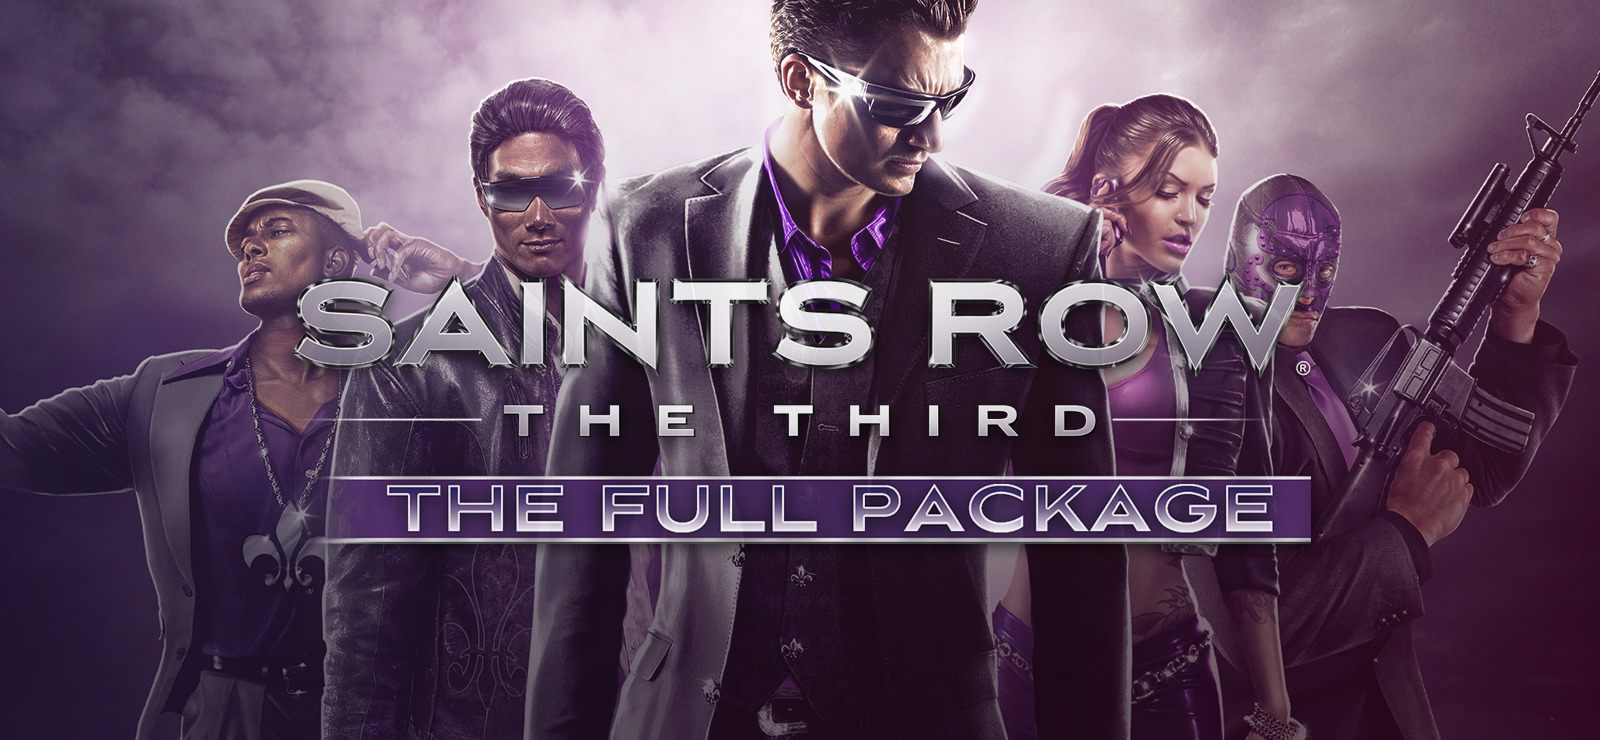 Saints Row The Third Full Package Nintendo Switch release date